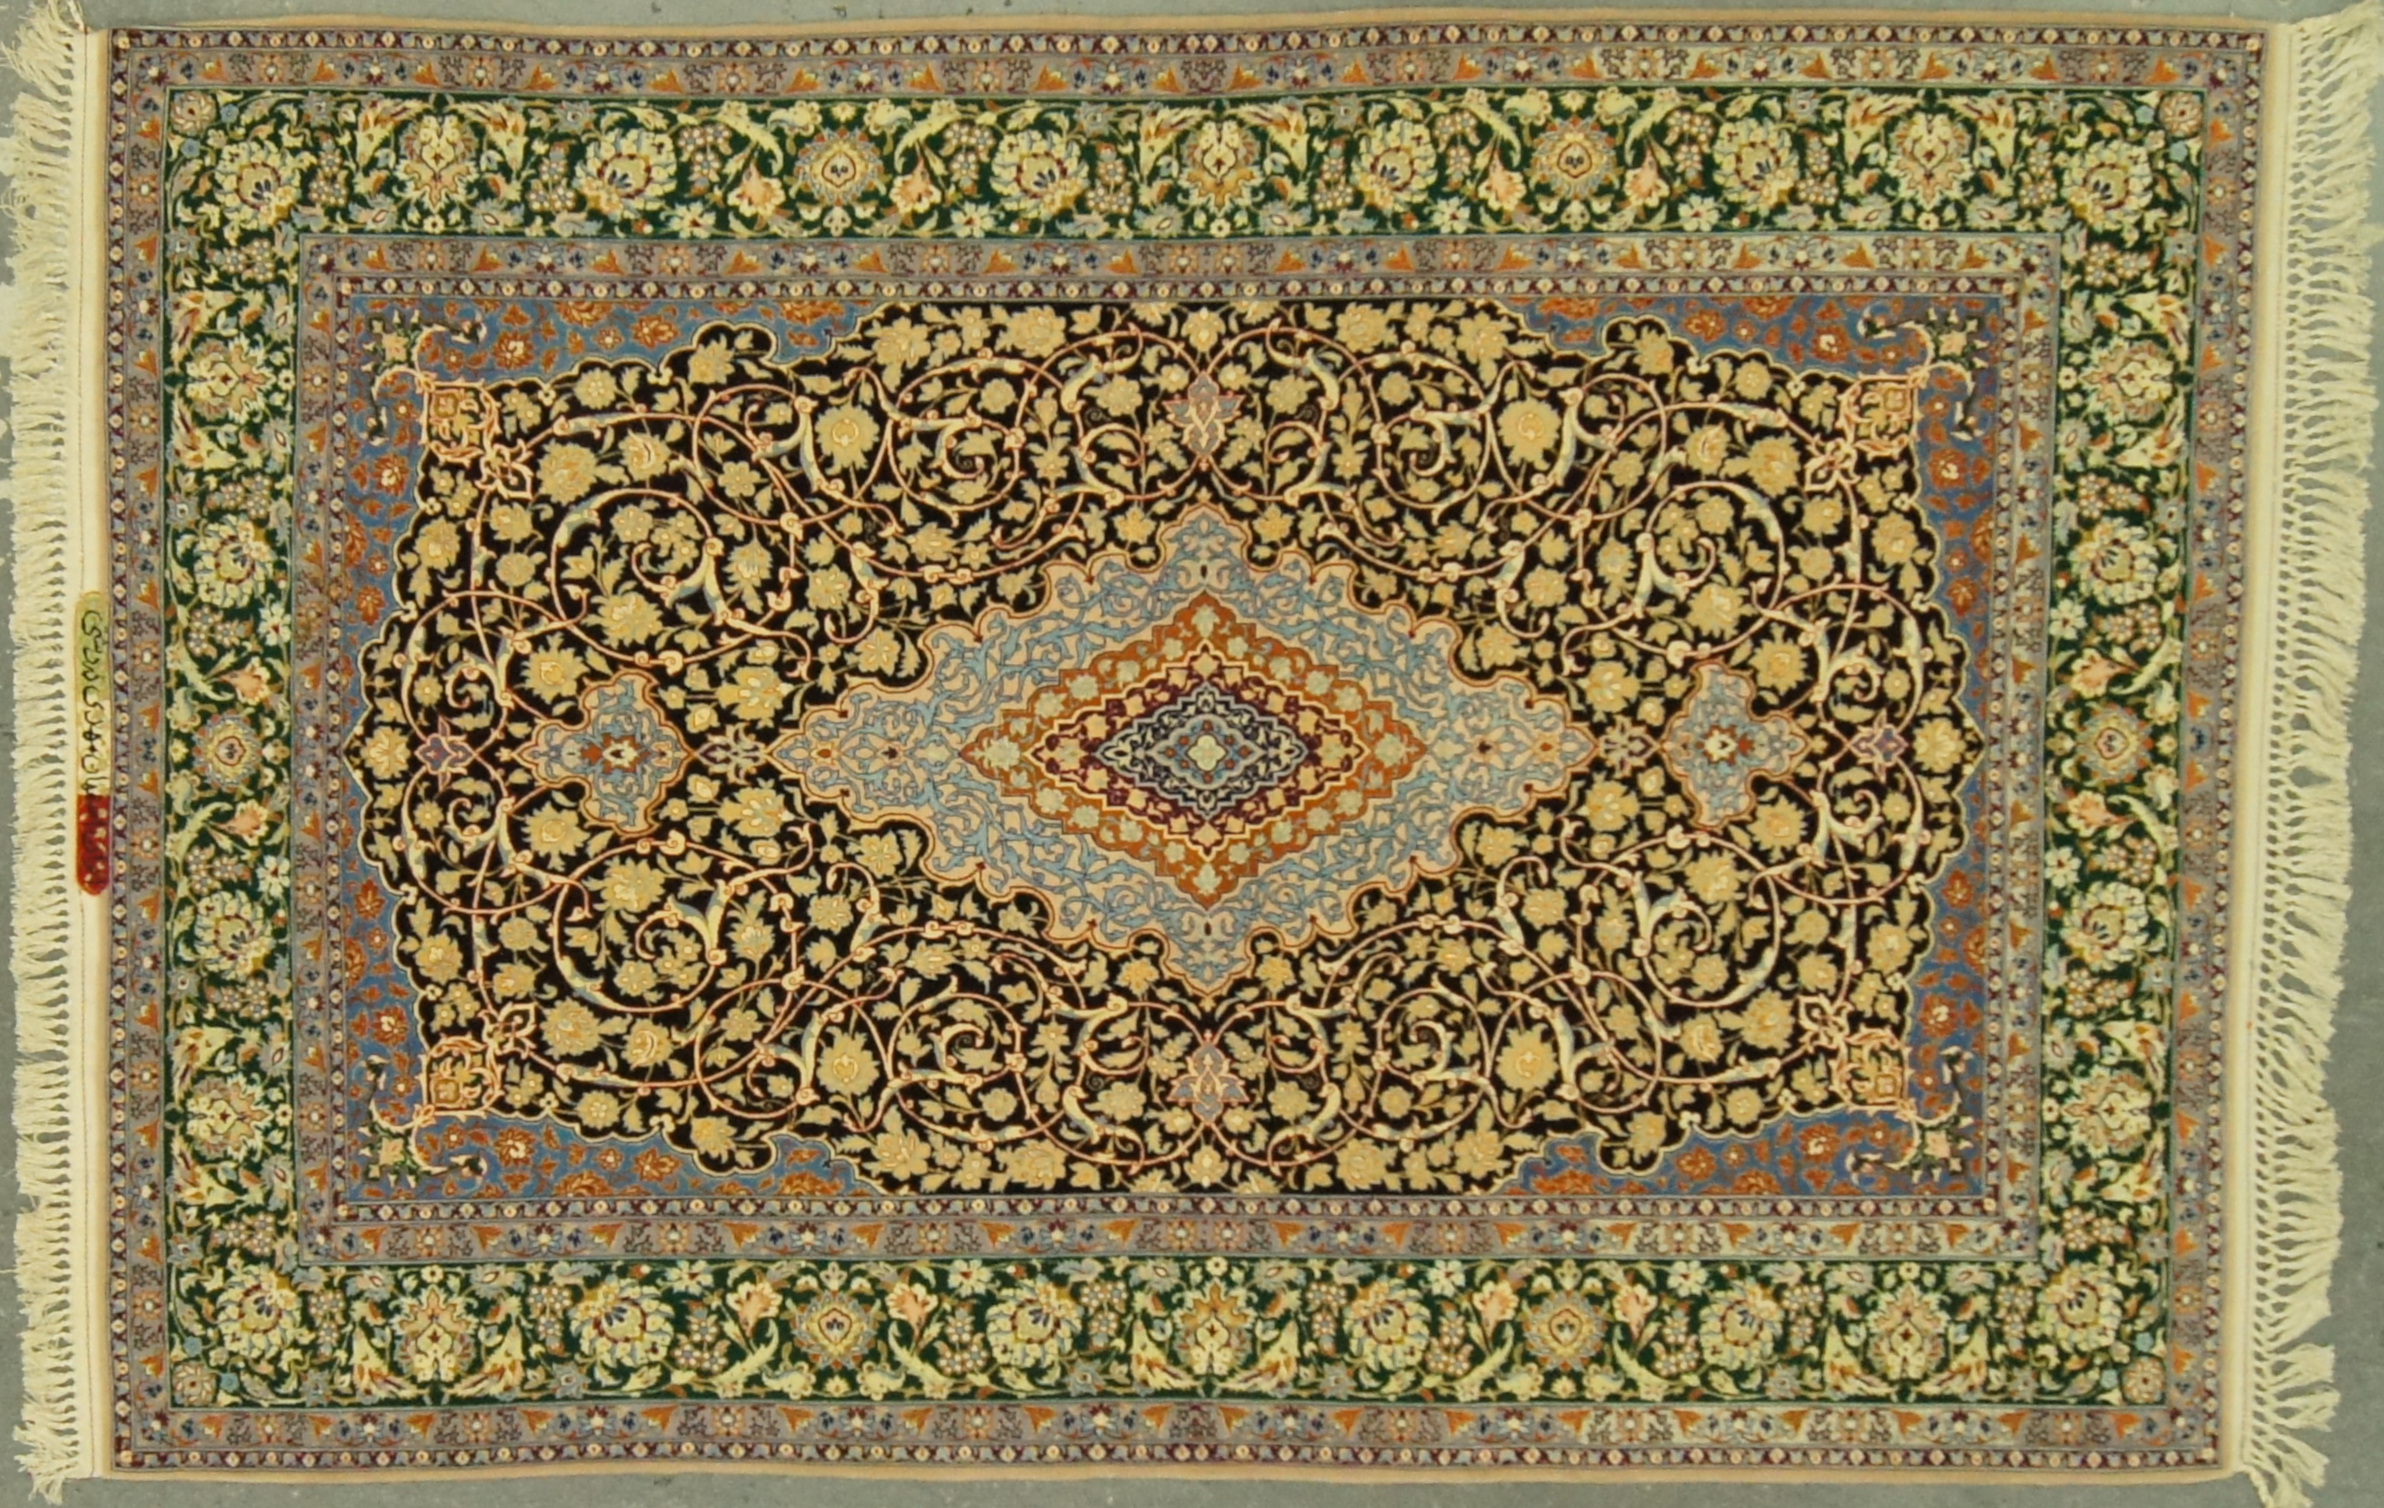 1950s 5x8 Persian Isfahan Superfine Wool & Silk Rug